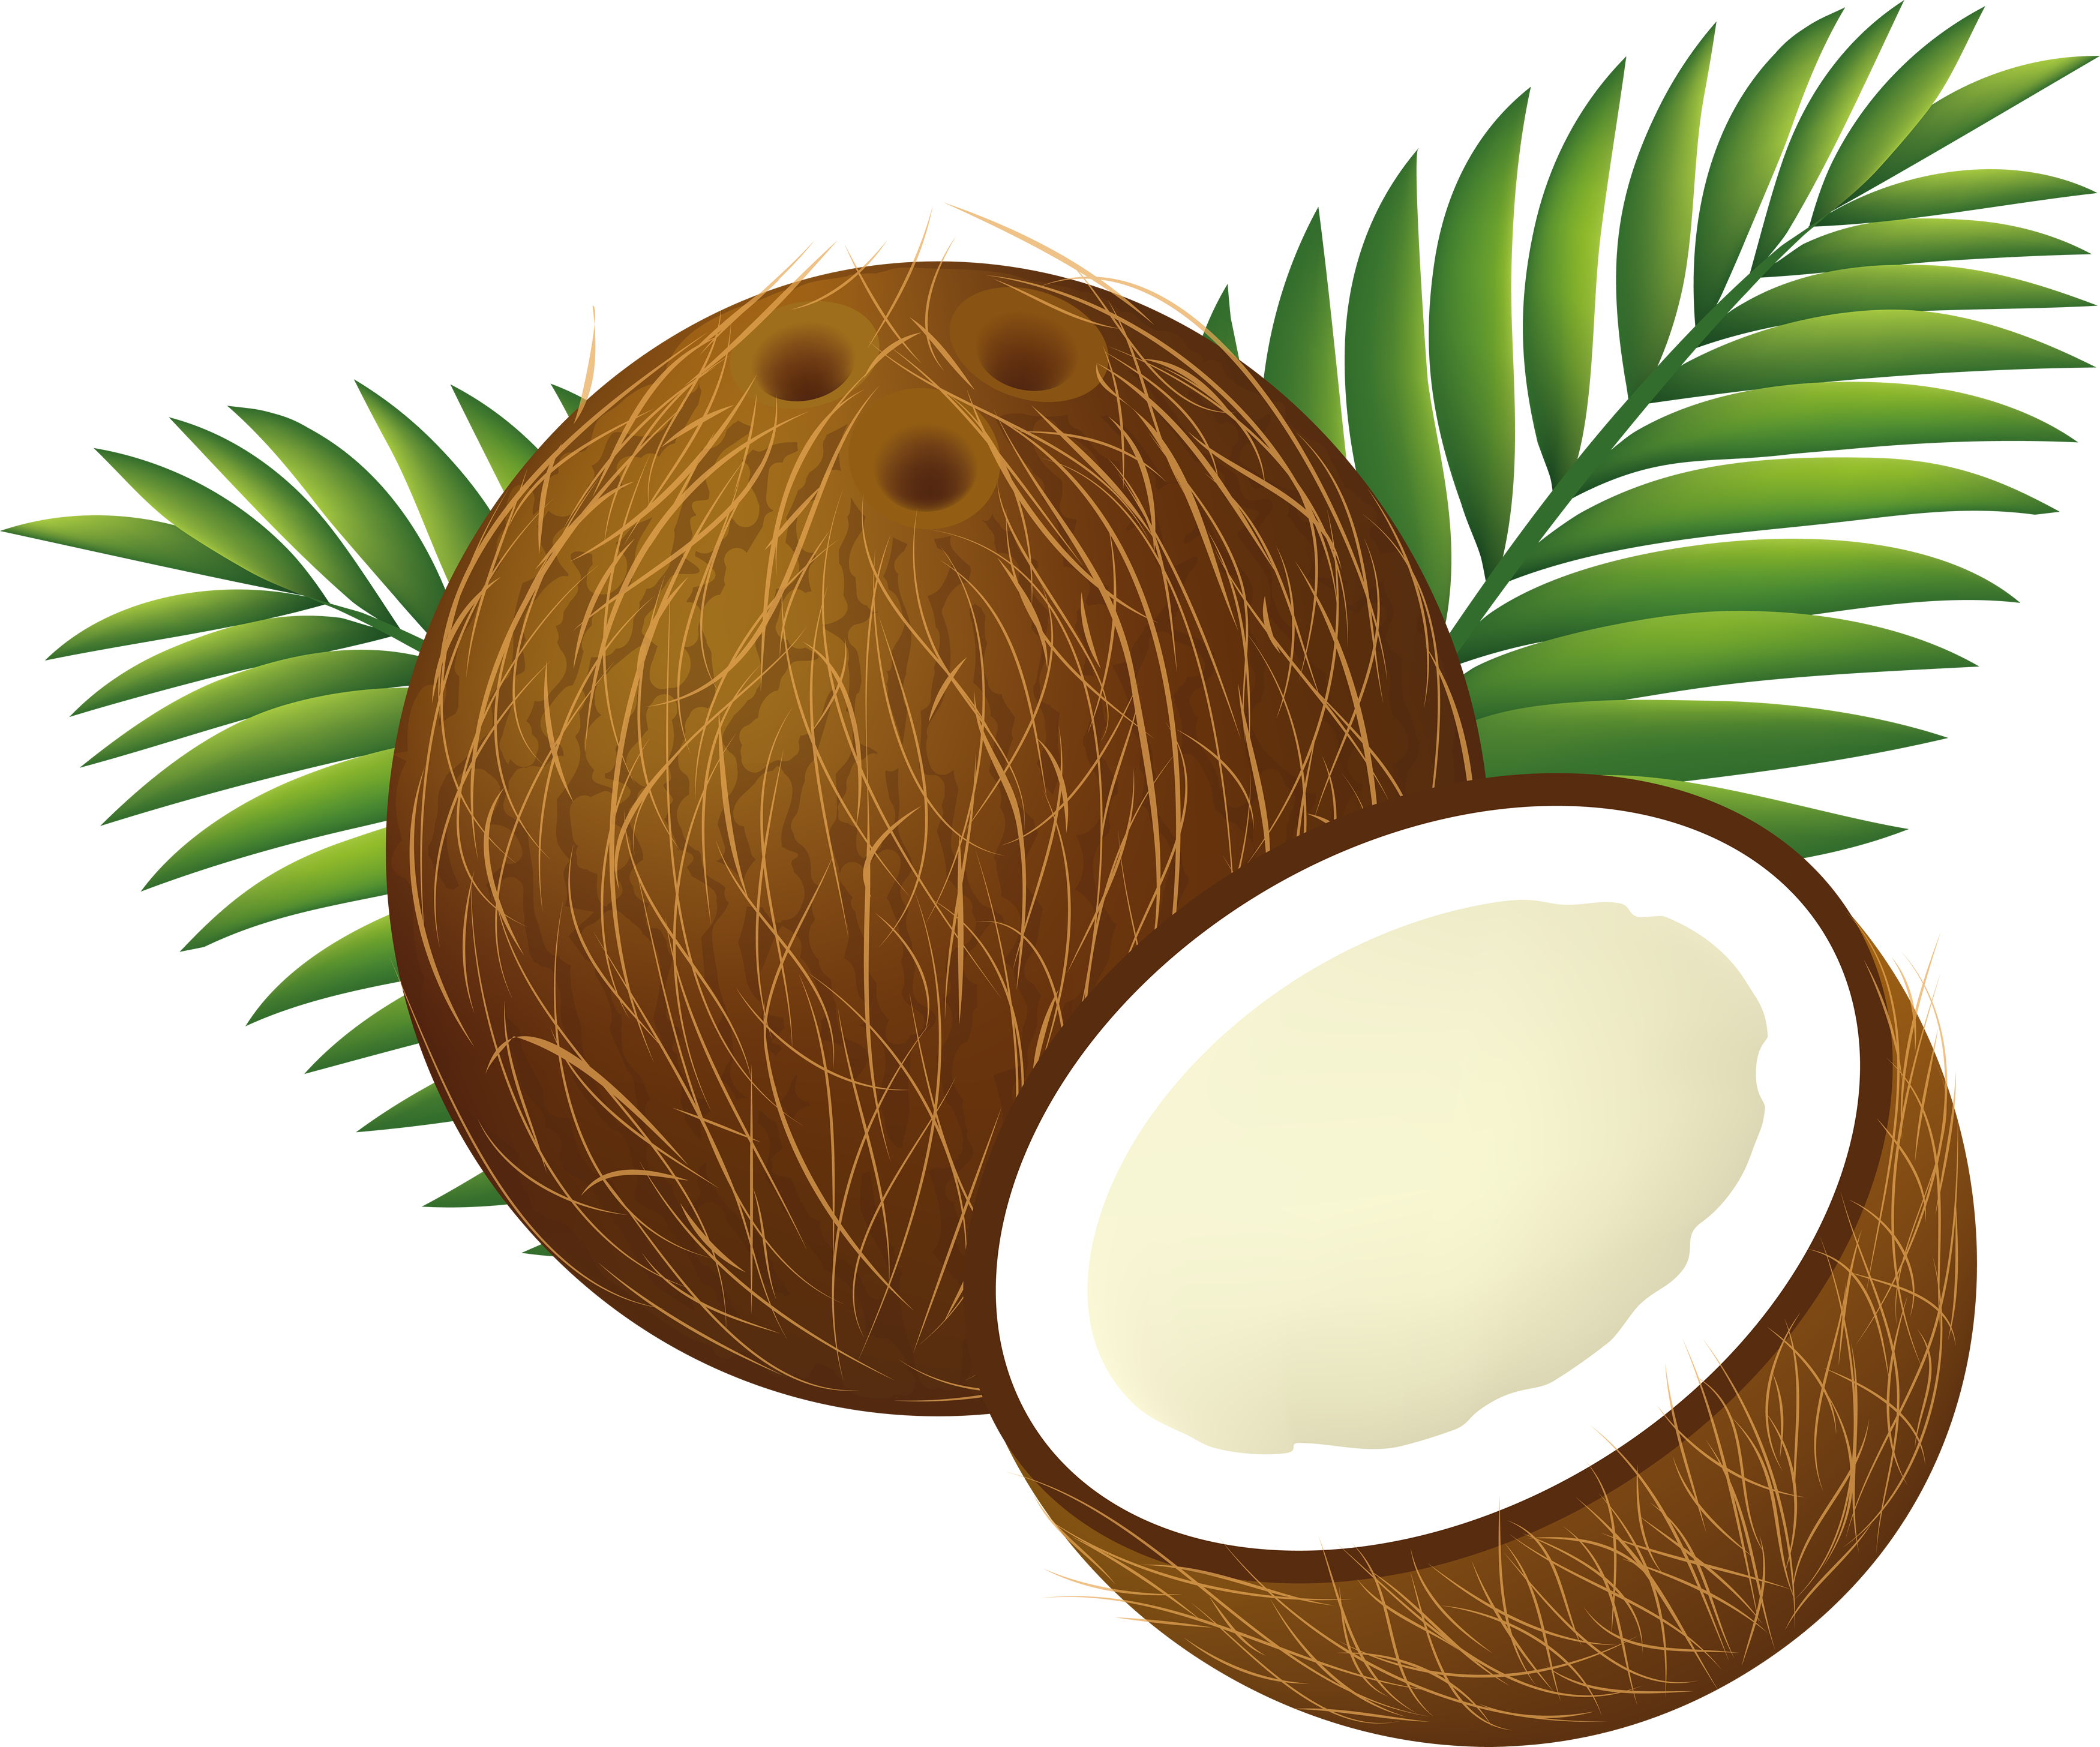 Coconut clipart image png royalty free download Clipart August Tree Collection #193233 - PNG Images - PNGio png royalty free download